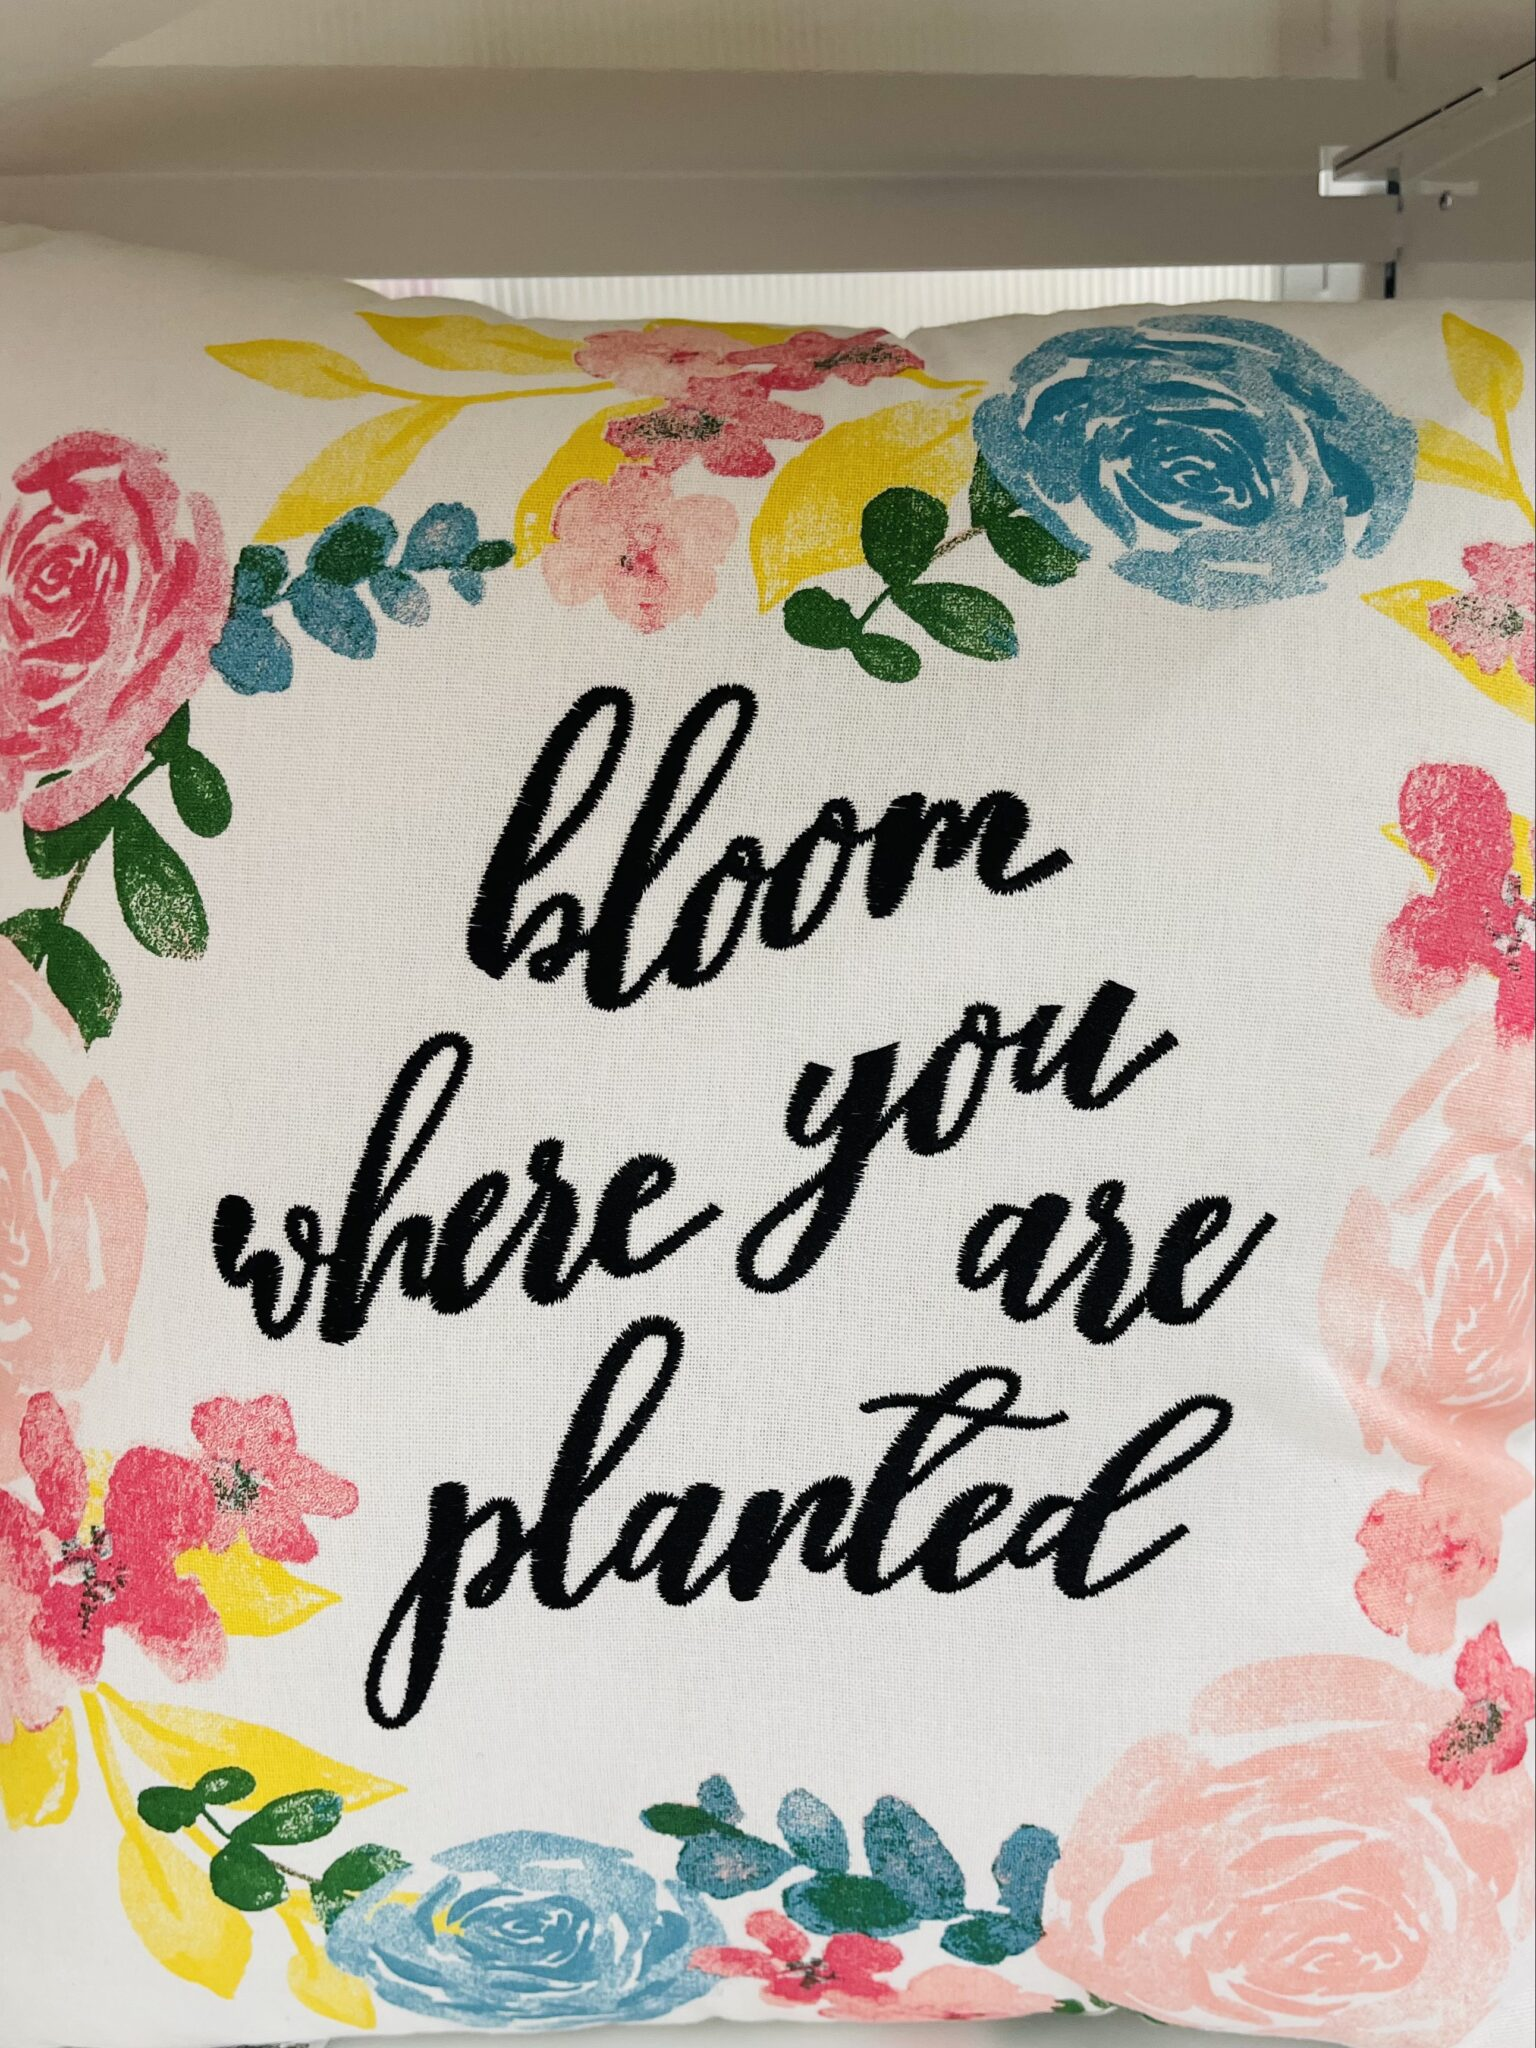 It's not cliche to bloom where you are planted